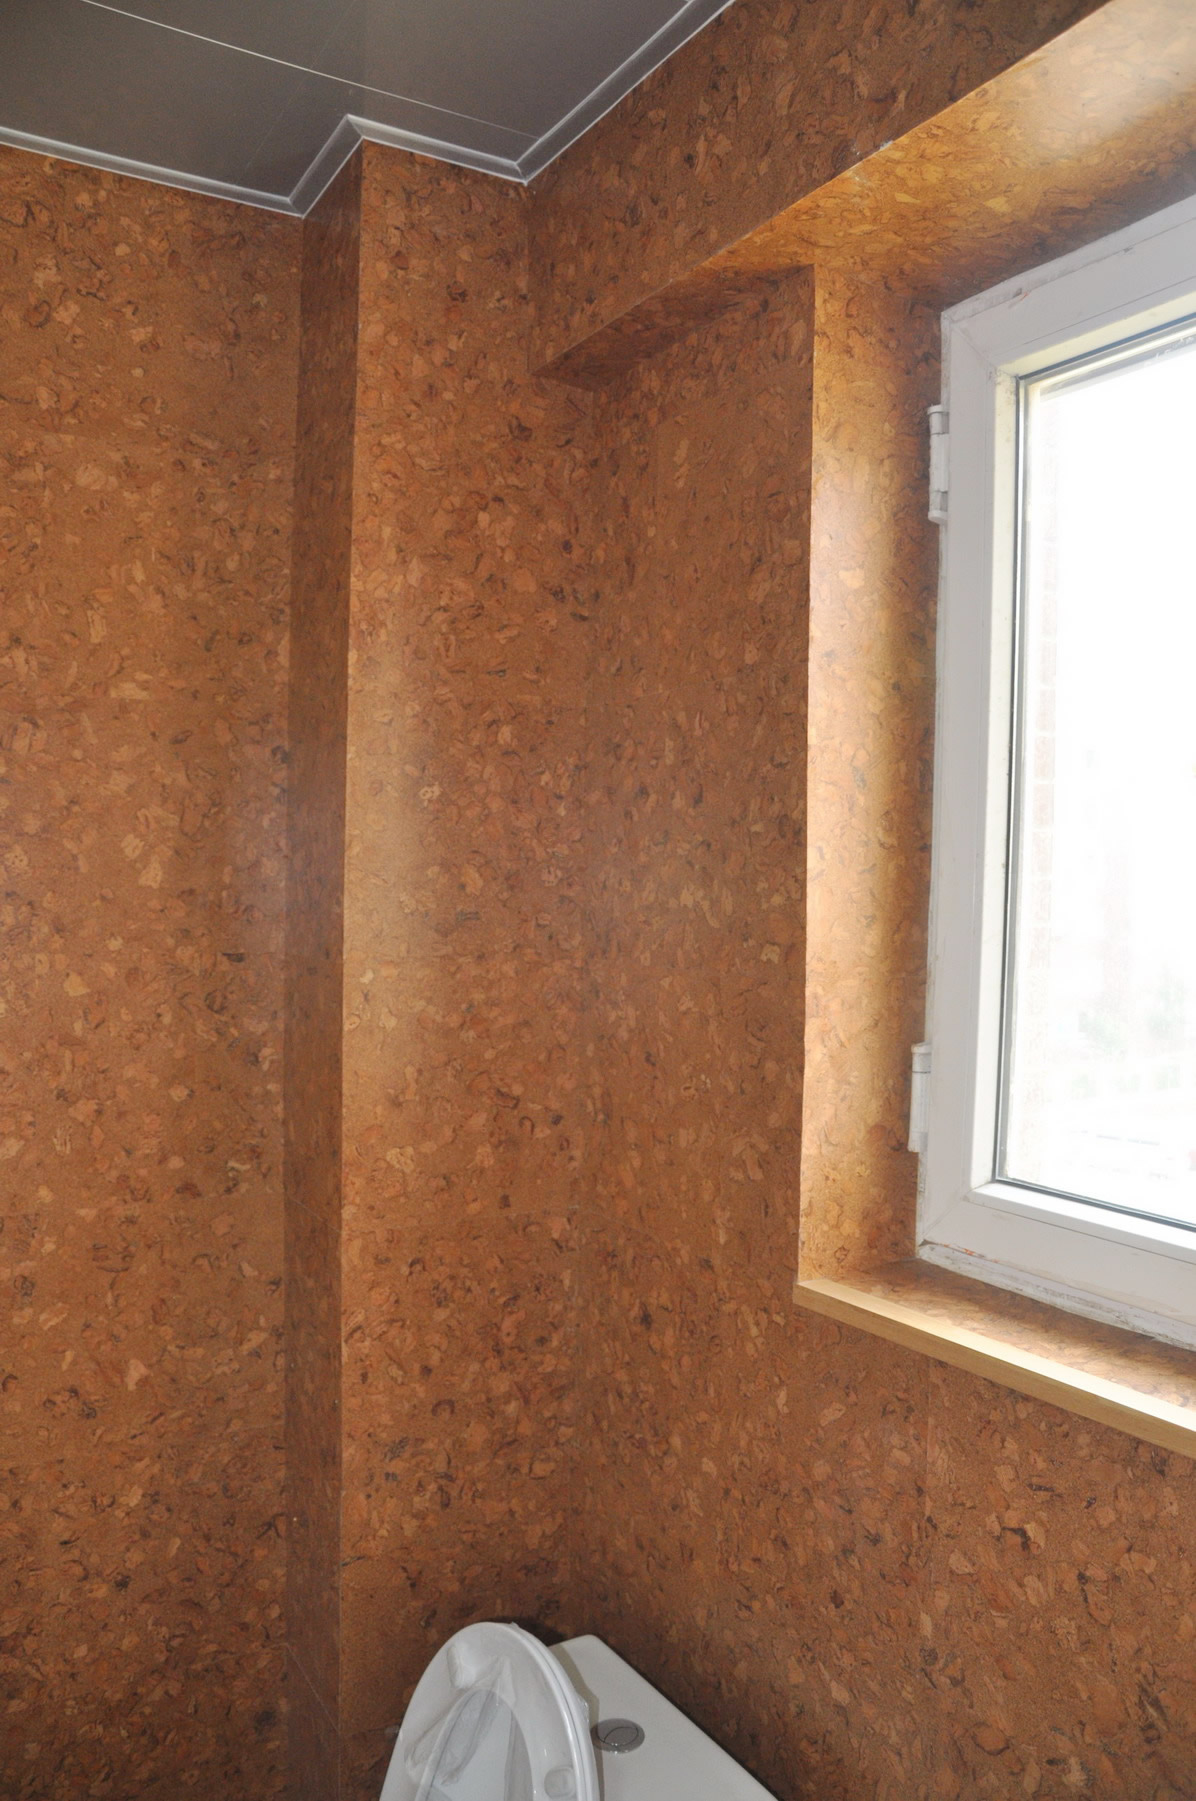 Uncategorized Cork Wall Tiles sand marble cork wall tiles 21 31 sq ft per package